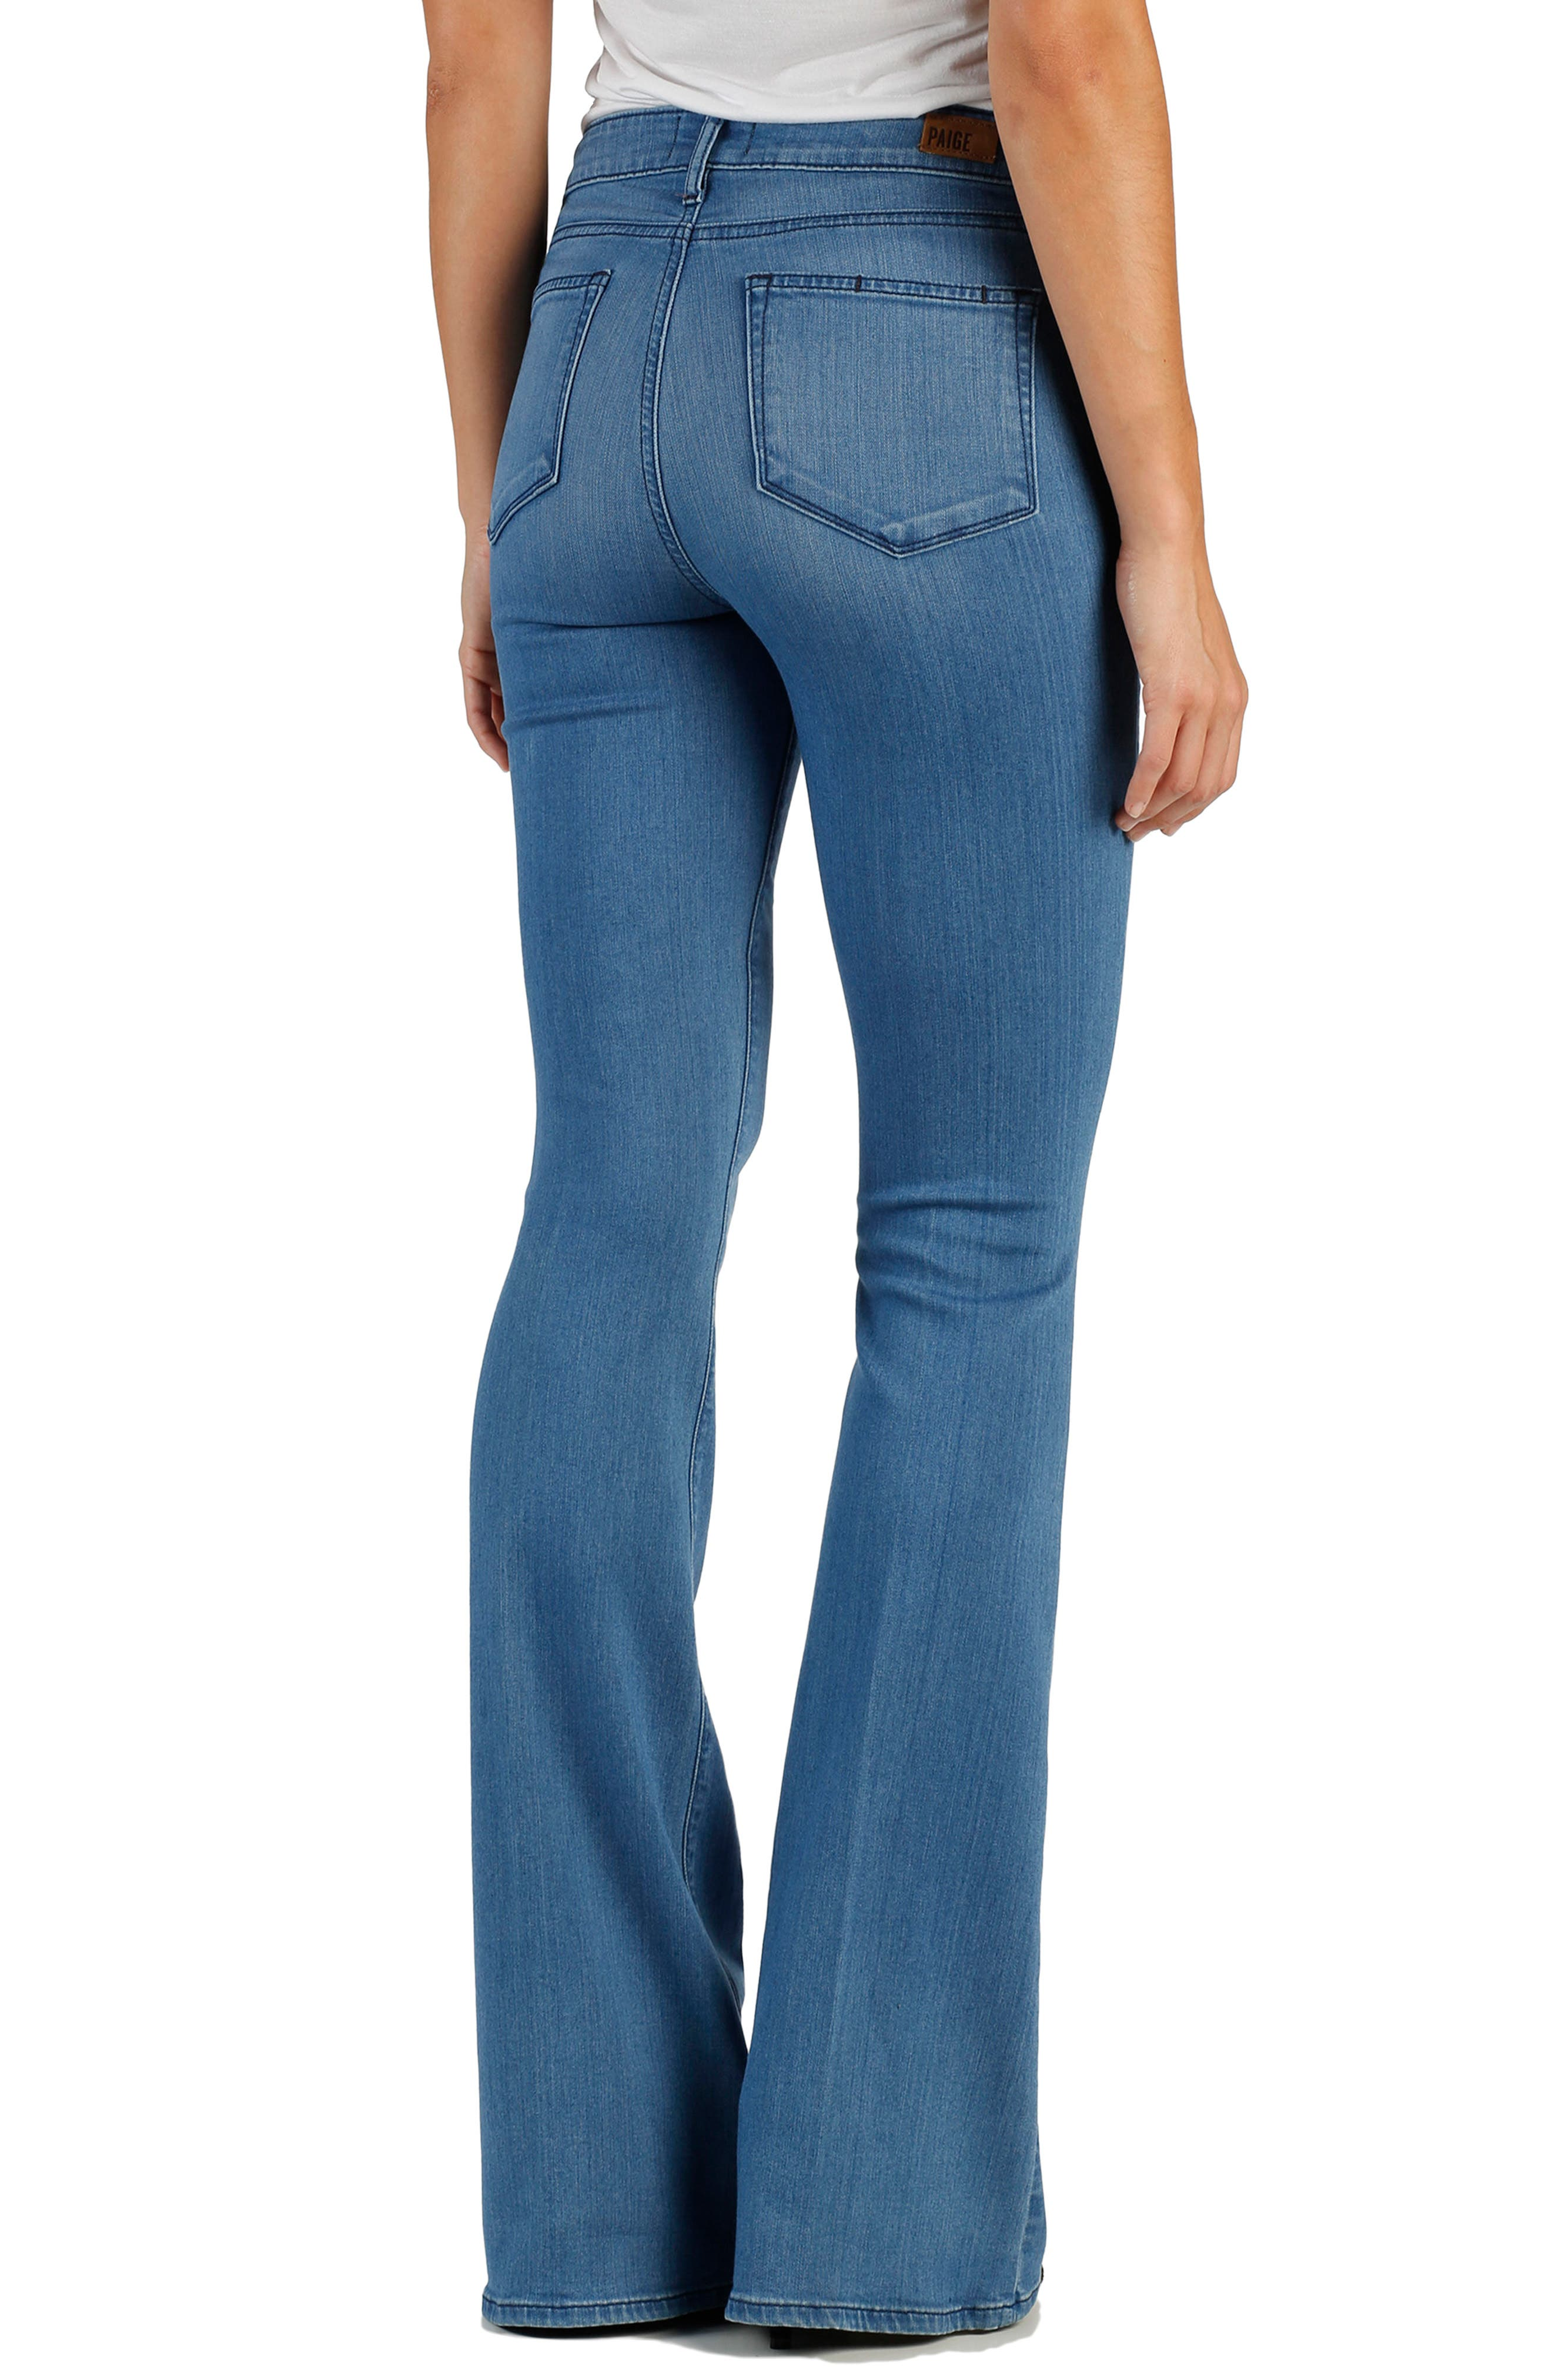 Transcend - Bell Canyon High Waist Flare Jeans,                             Alternate thumbnail 2, color,                             Harbor